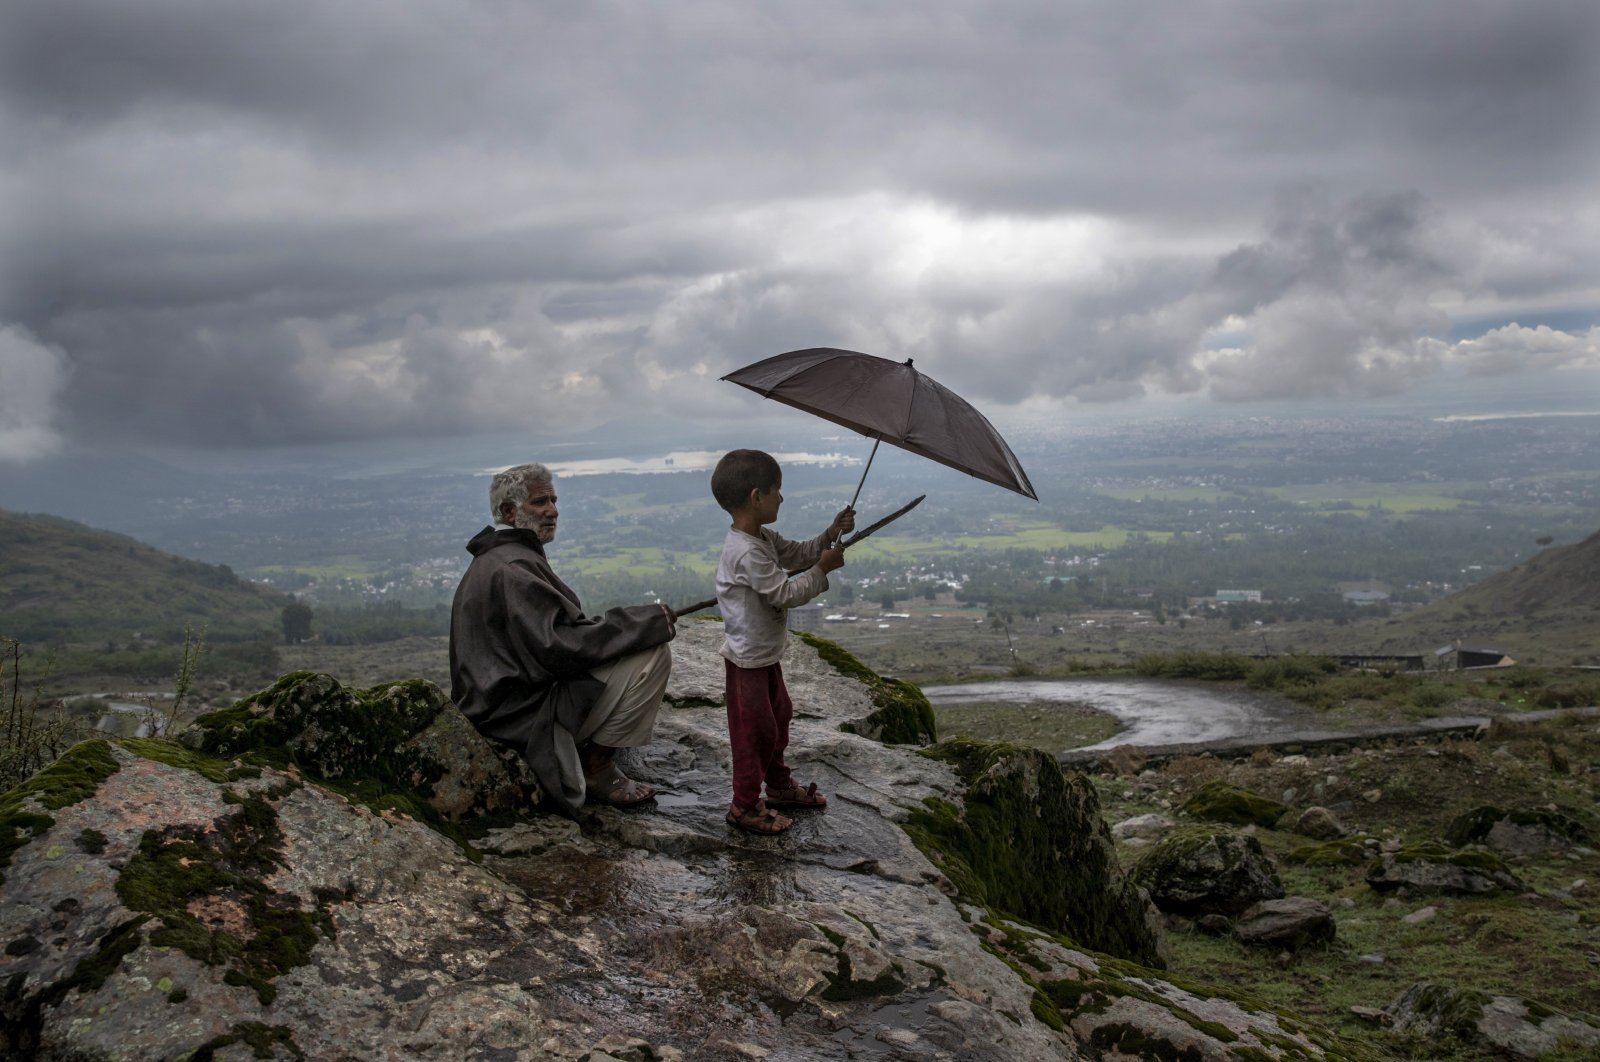 A Kashmiri villager with his grandson keeps watch over their cattle from a hillock on the outskirts of Srinagar, Indian-controlled Kashmir, Aug. 31, 2020. (AP Photo)